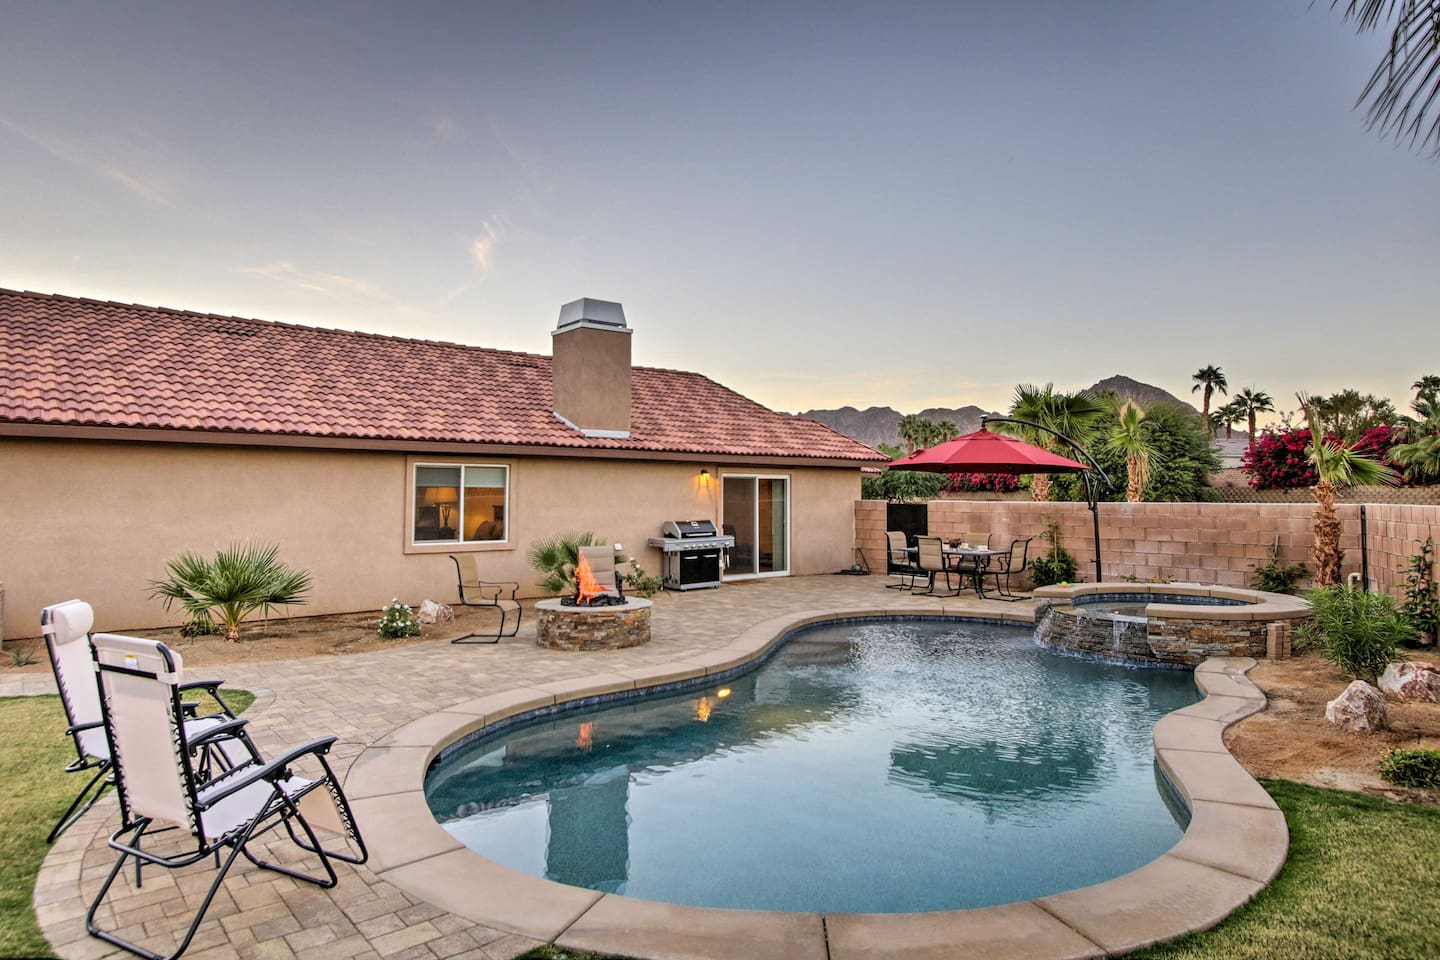 Retreat to La Quinta in this 3-bedroom, 2-bathroom vacation rental home.